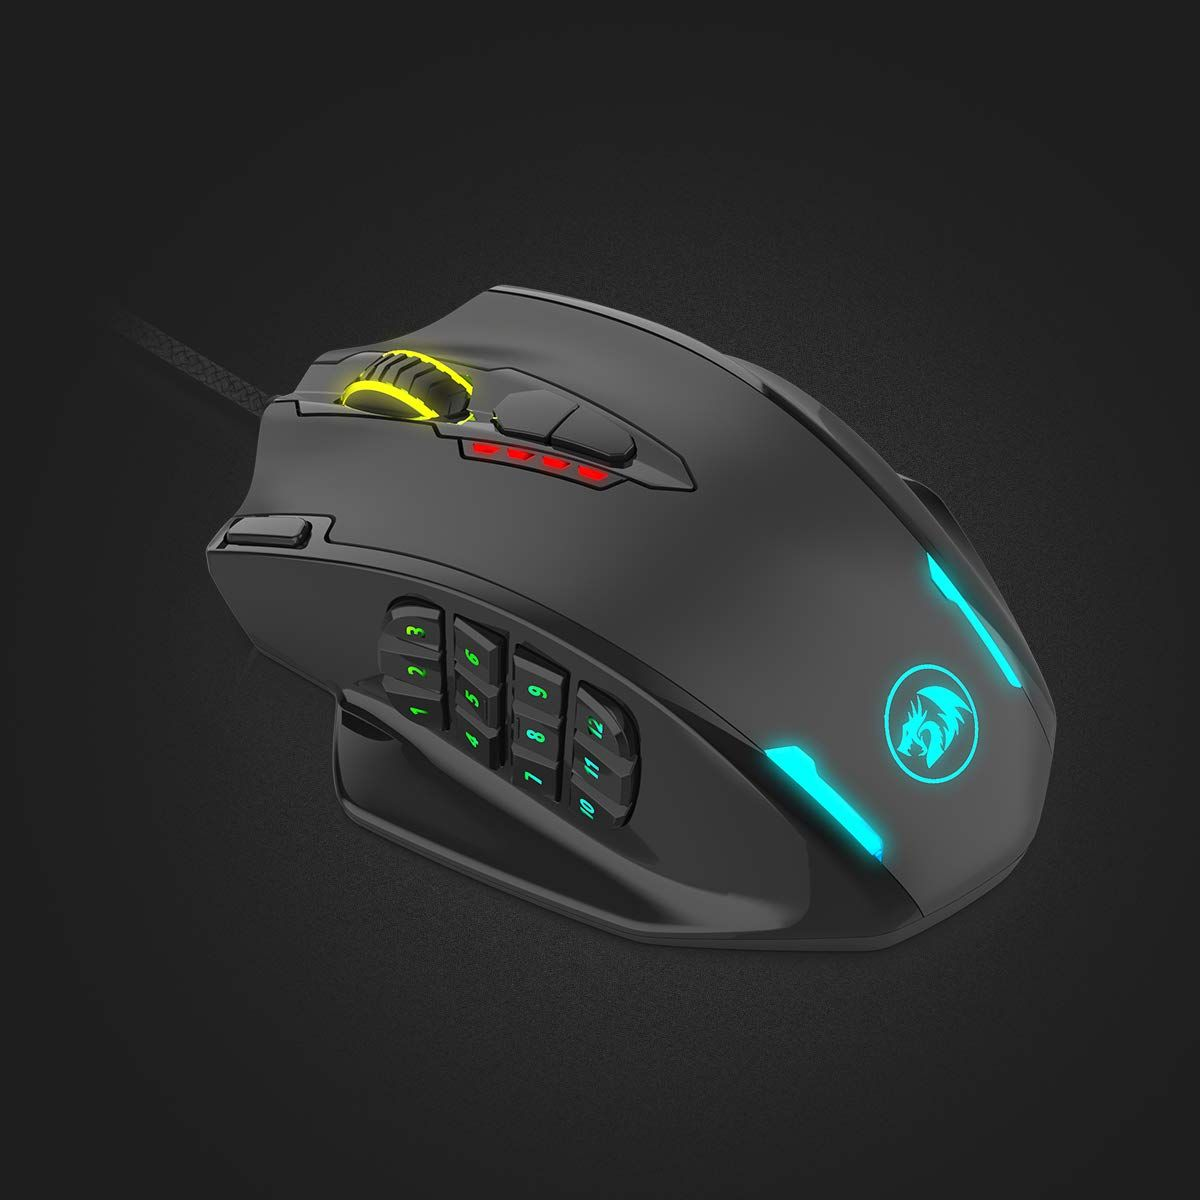 LOGITECH G300s Optical Gaming Mouse 910-004360 Video Game *NEW* Computer